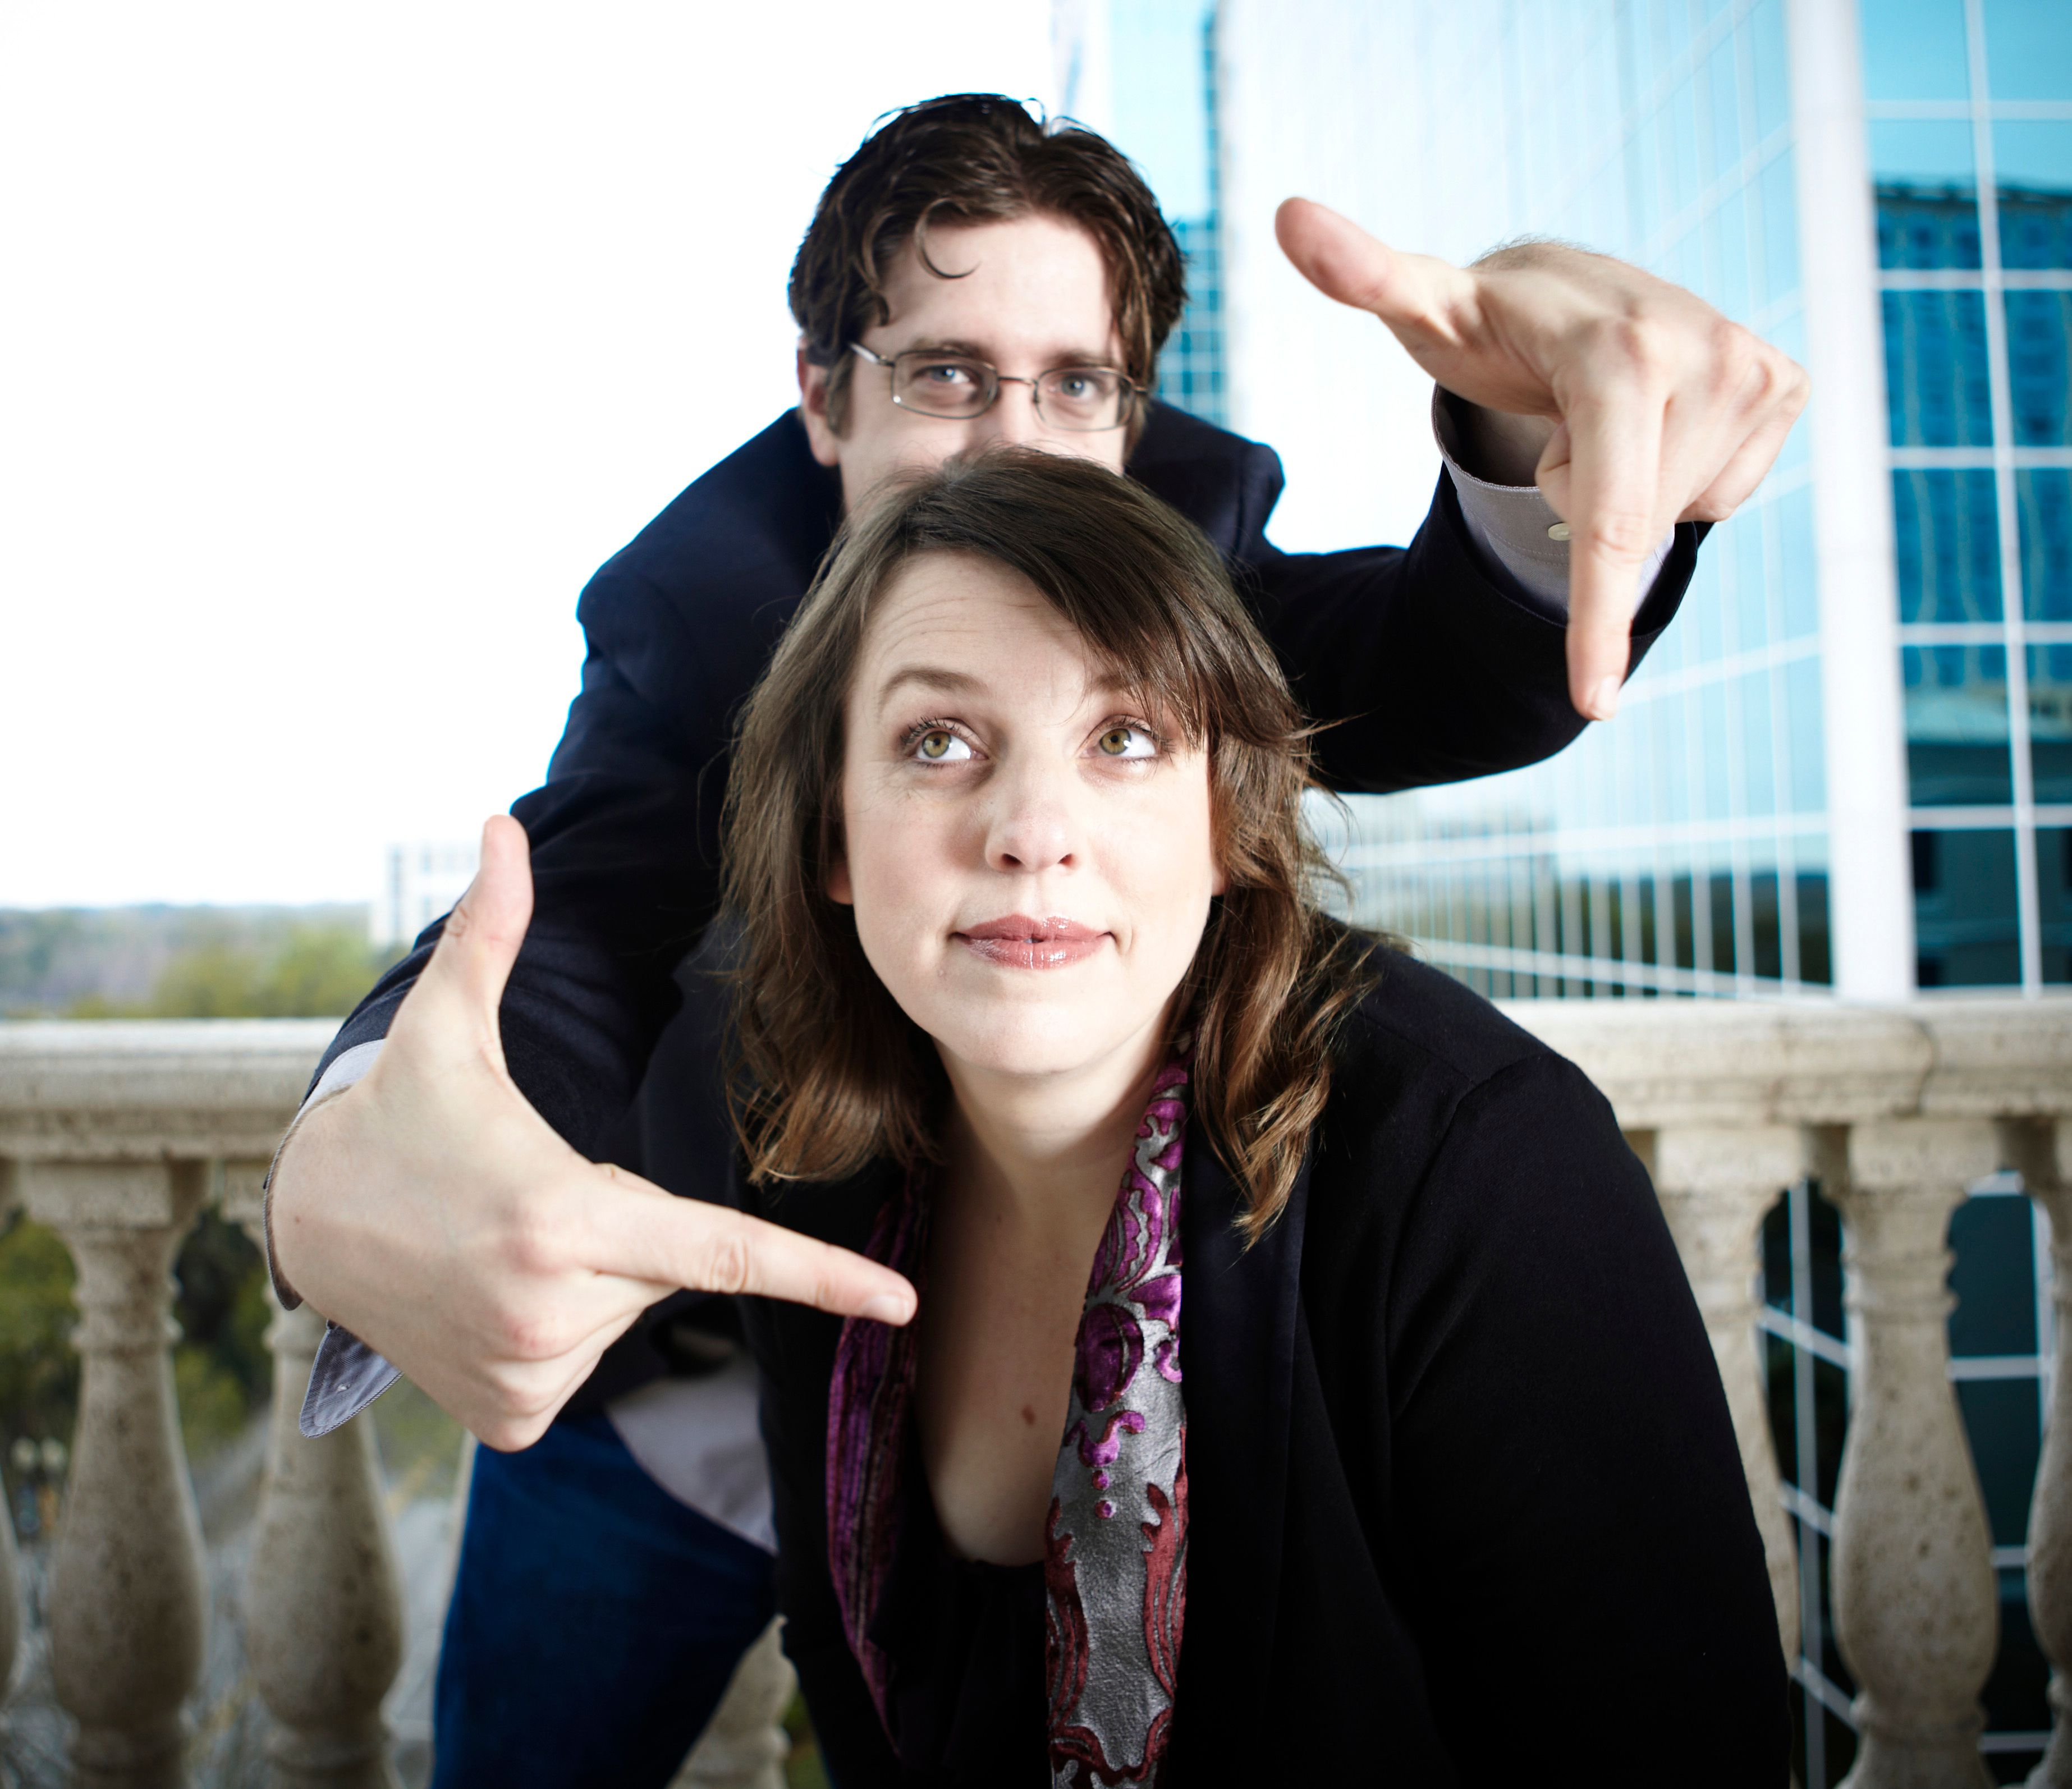 Christopher Schmitt and Ari Stiles, Christopher is standing behind Ari and frames her face with his extended thumb and index fingers.